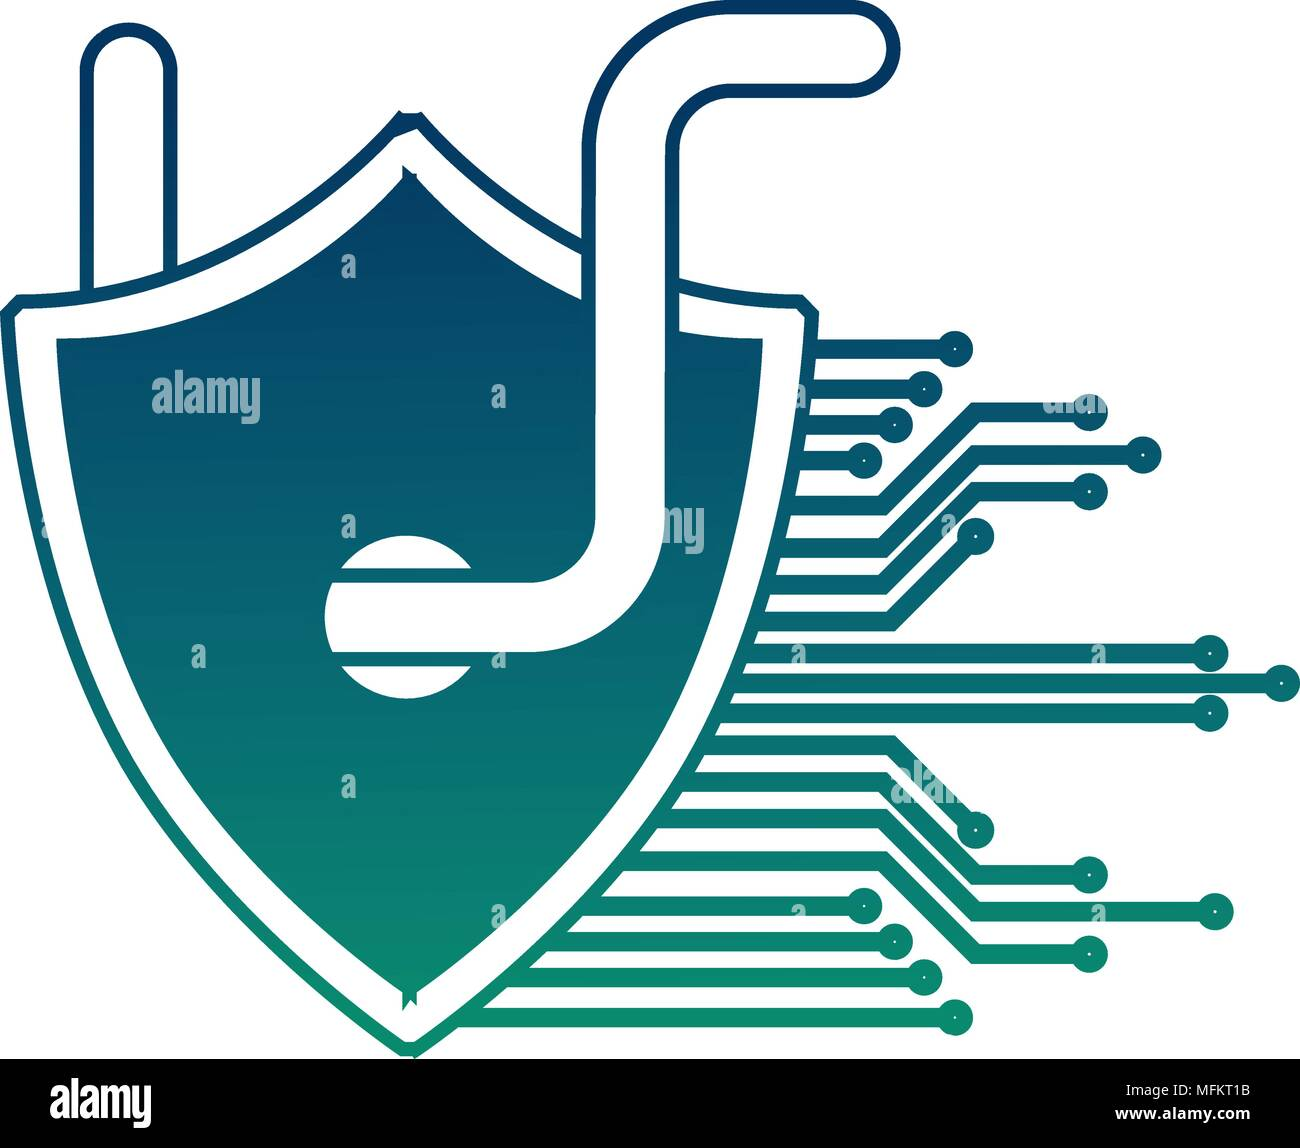 cyber security shield protection worm virus circuit technology hacking - Stock Image